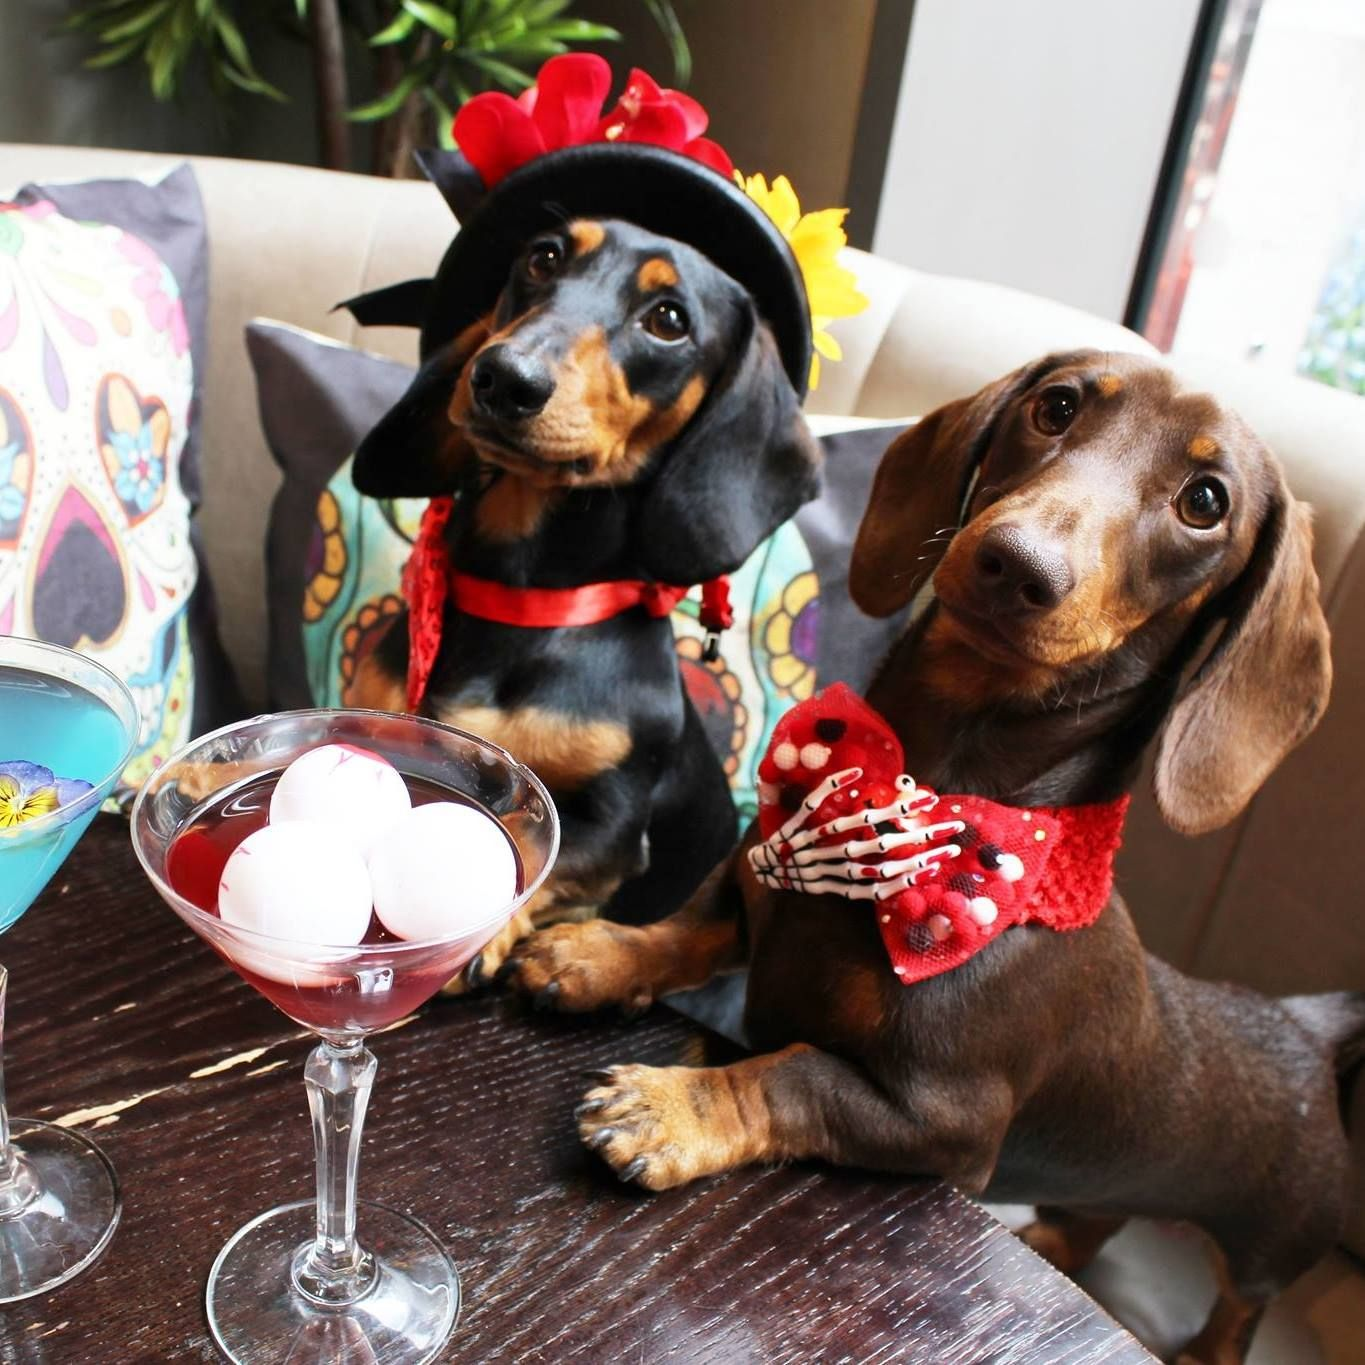 Image may contain: Cocktail, Goblet, Alcohol, Beverage, Drink, Glass, Pet, Mammal, Animal, Canine, Dog